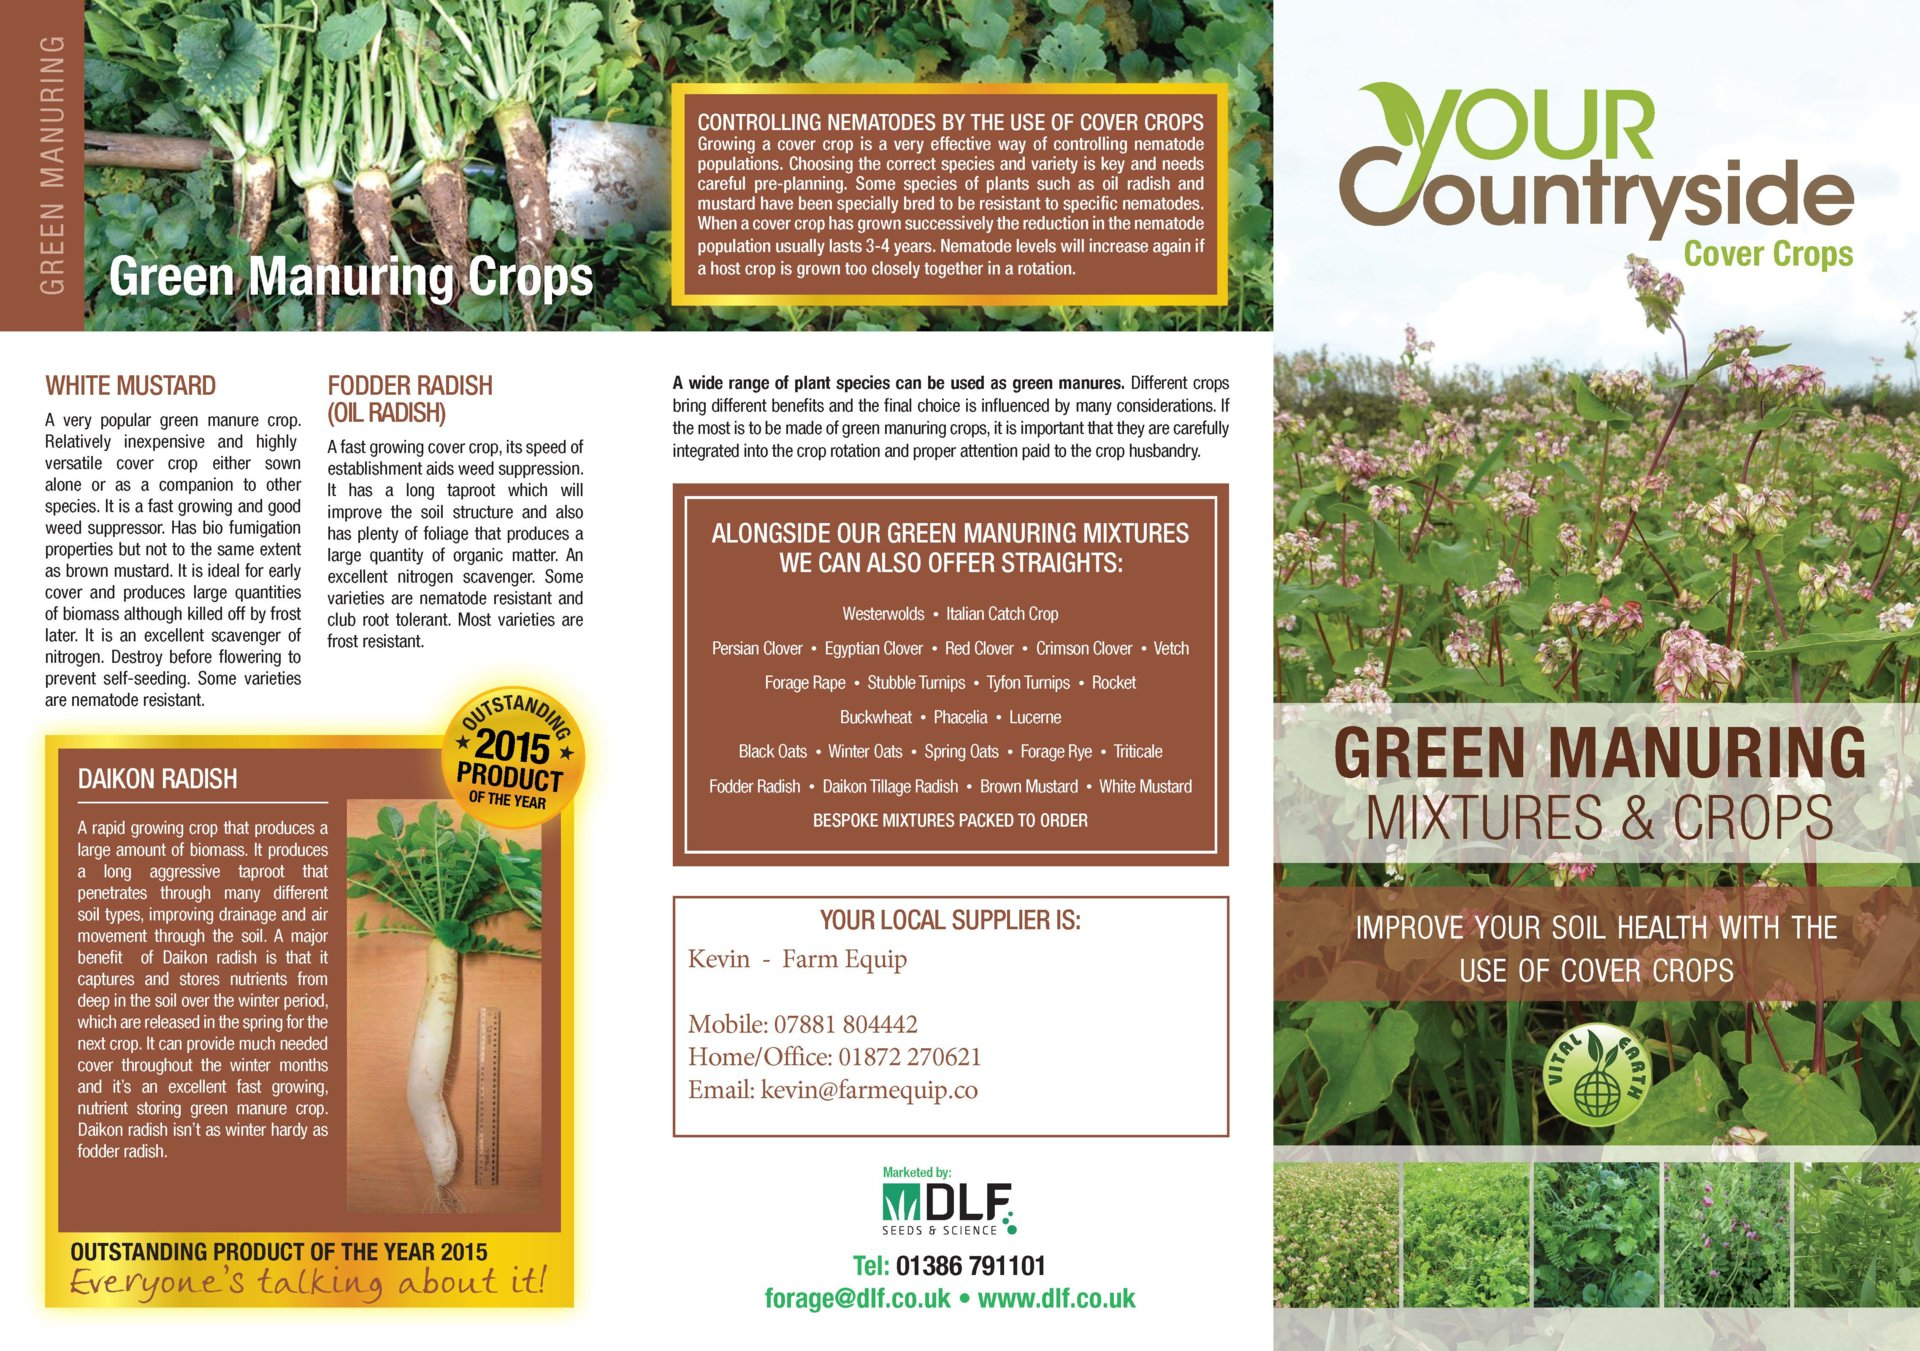 Your+Countryside+_Cover+Crops_+2016_Page_1.jpg